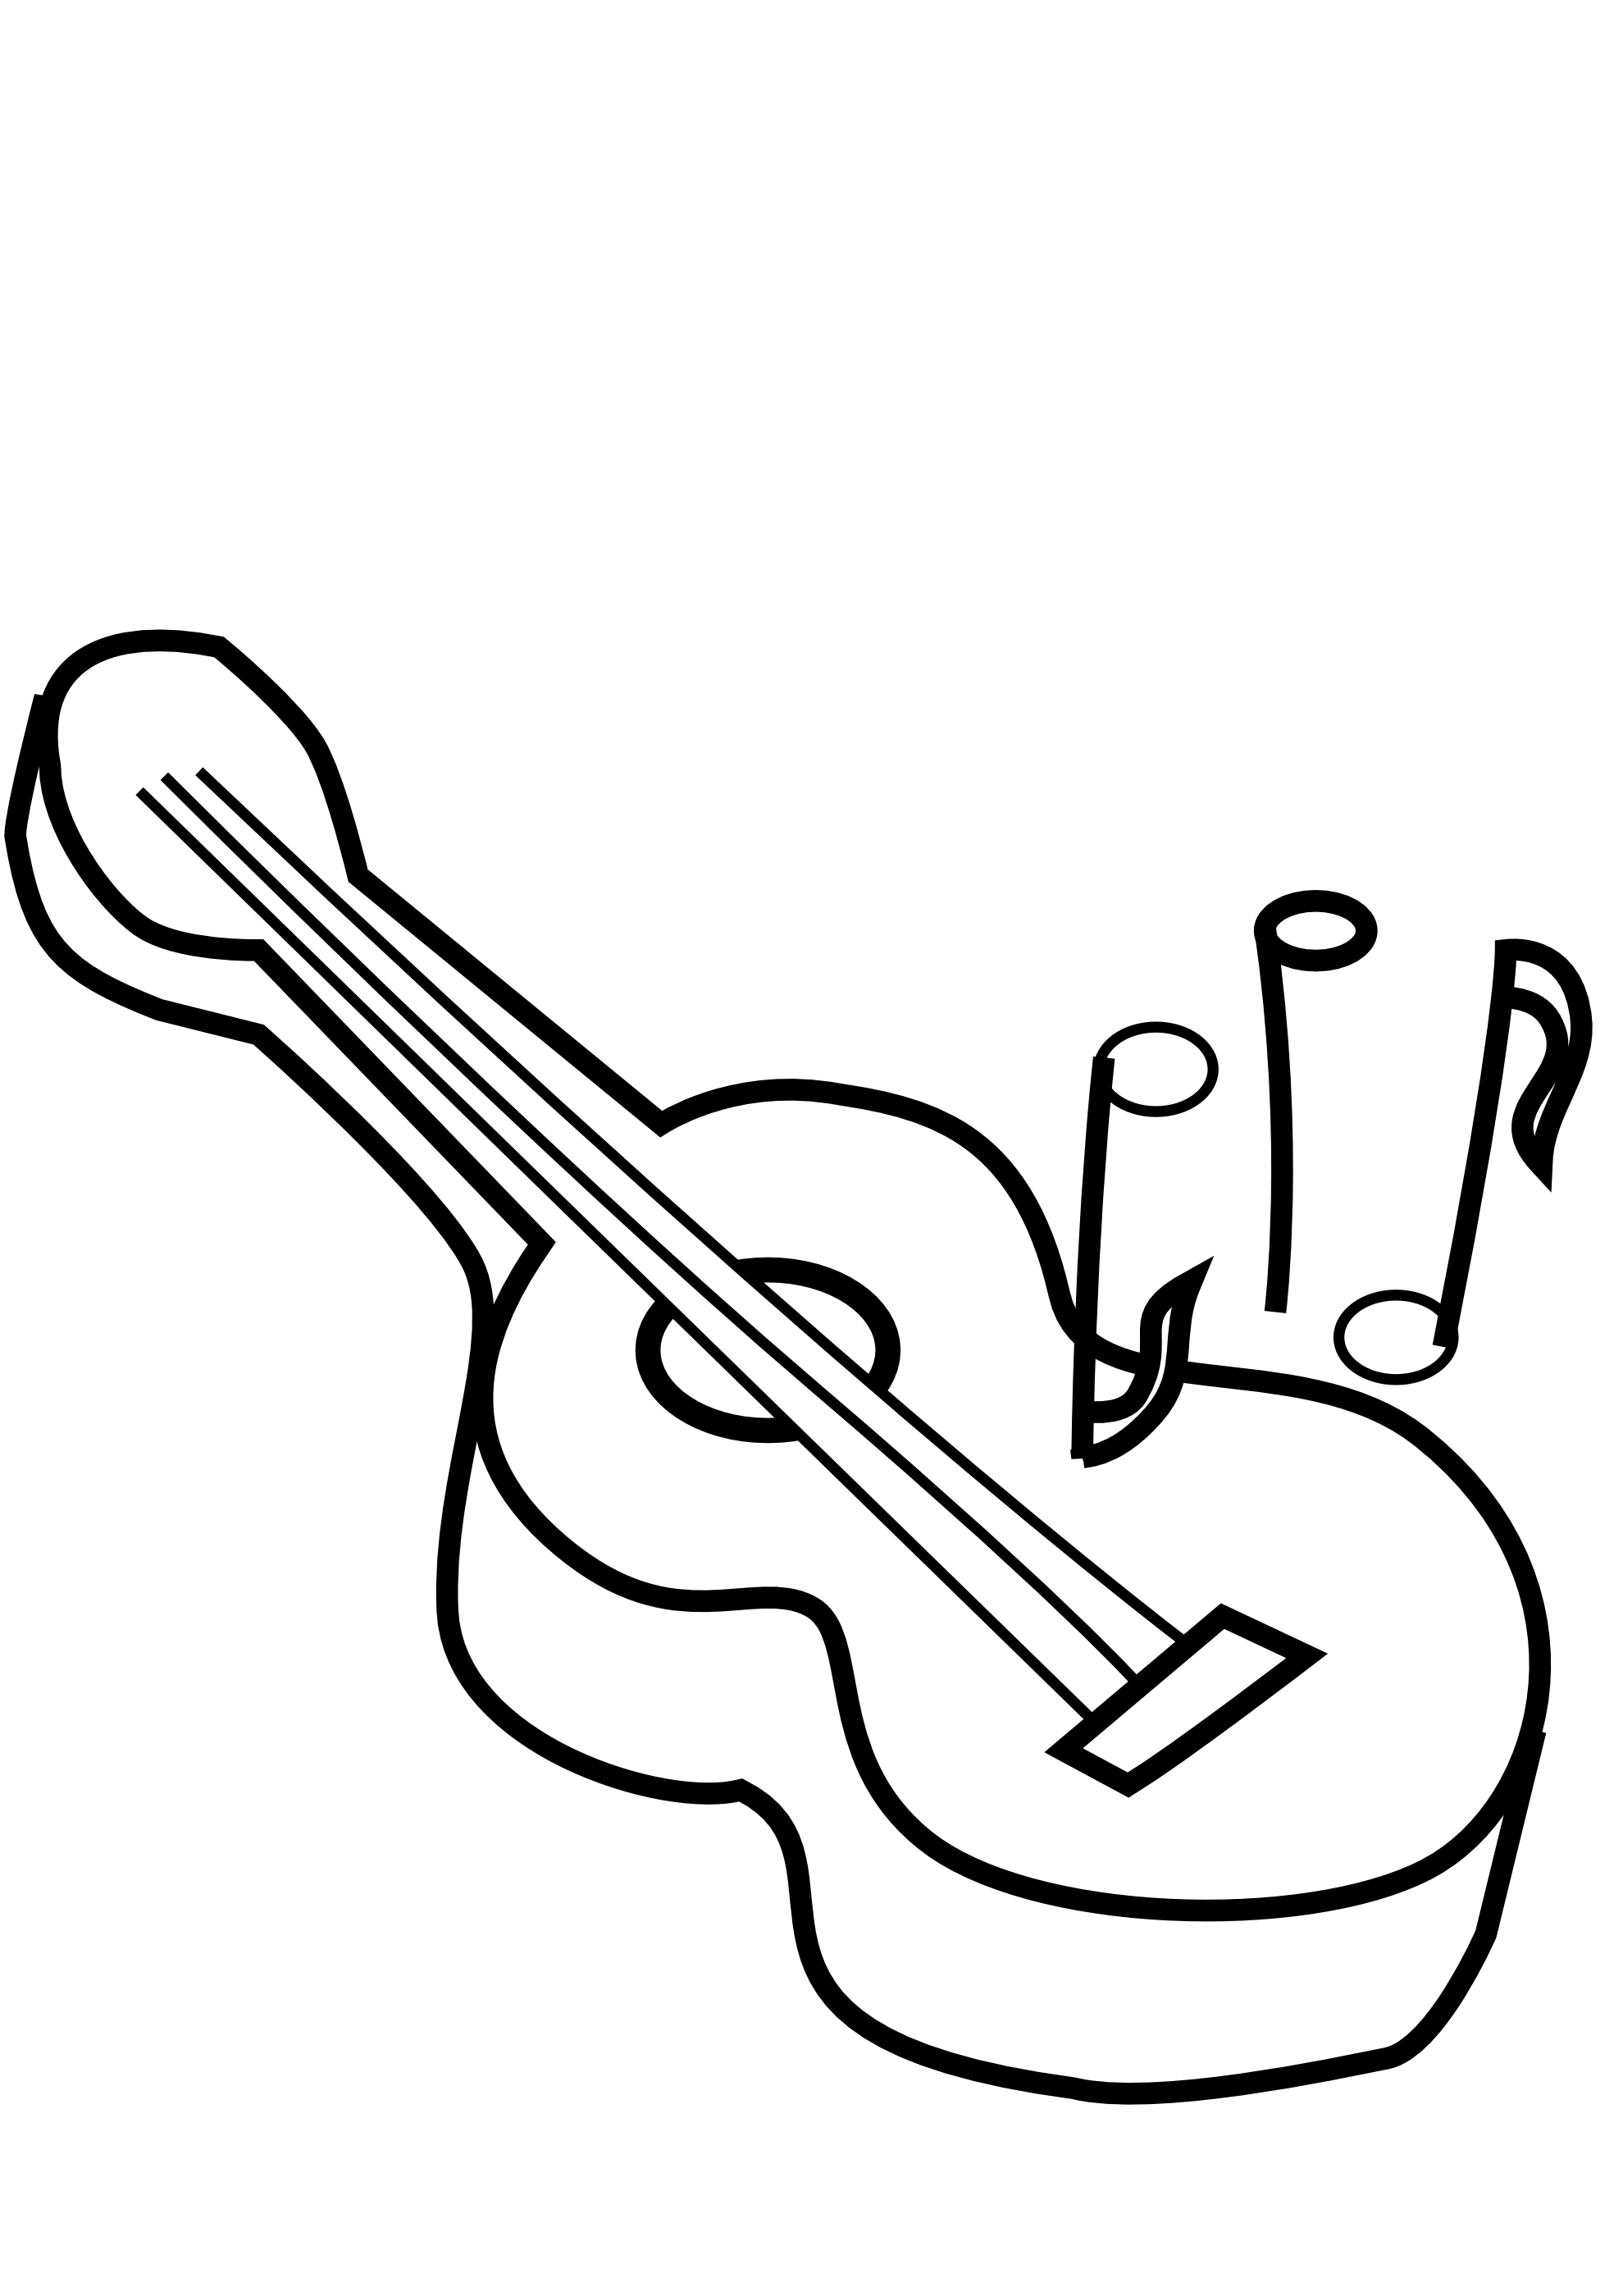 Guitar Clip Art Black And White